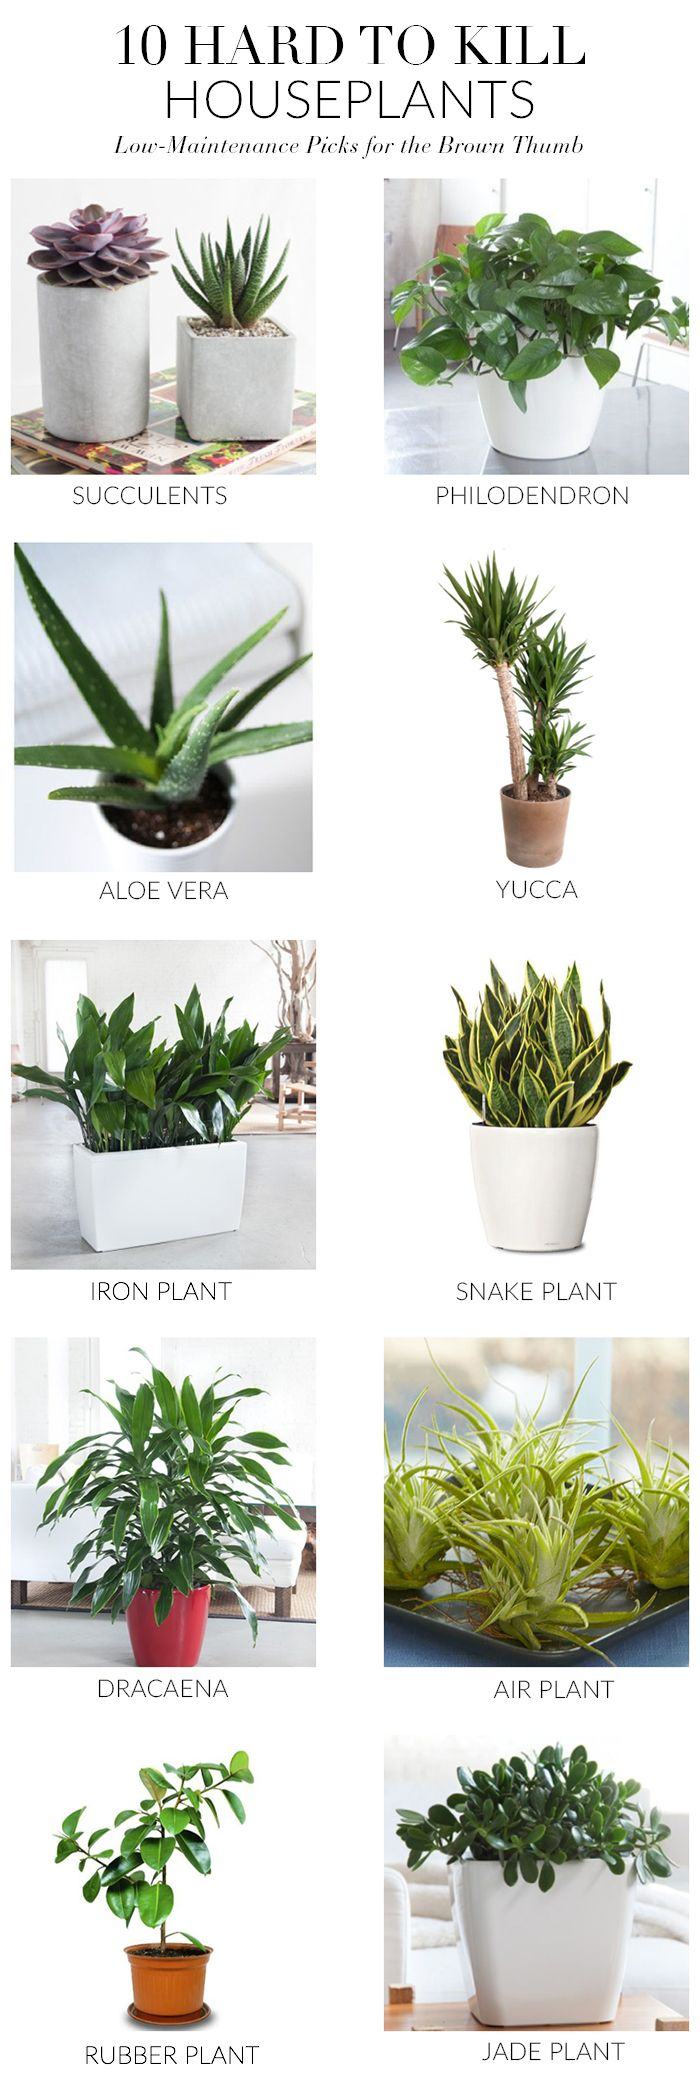 1000 ideas about good indoor plants on pinterest best Images of indoor plants